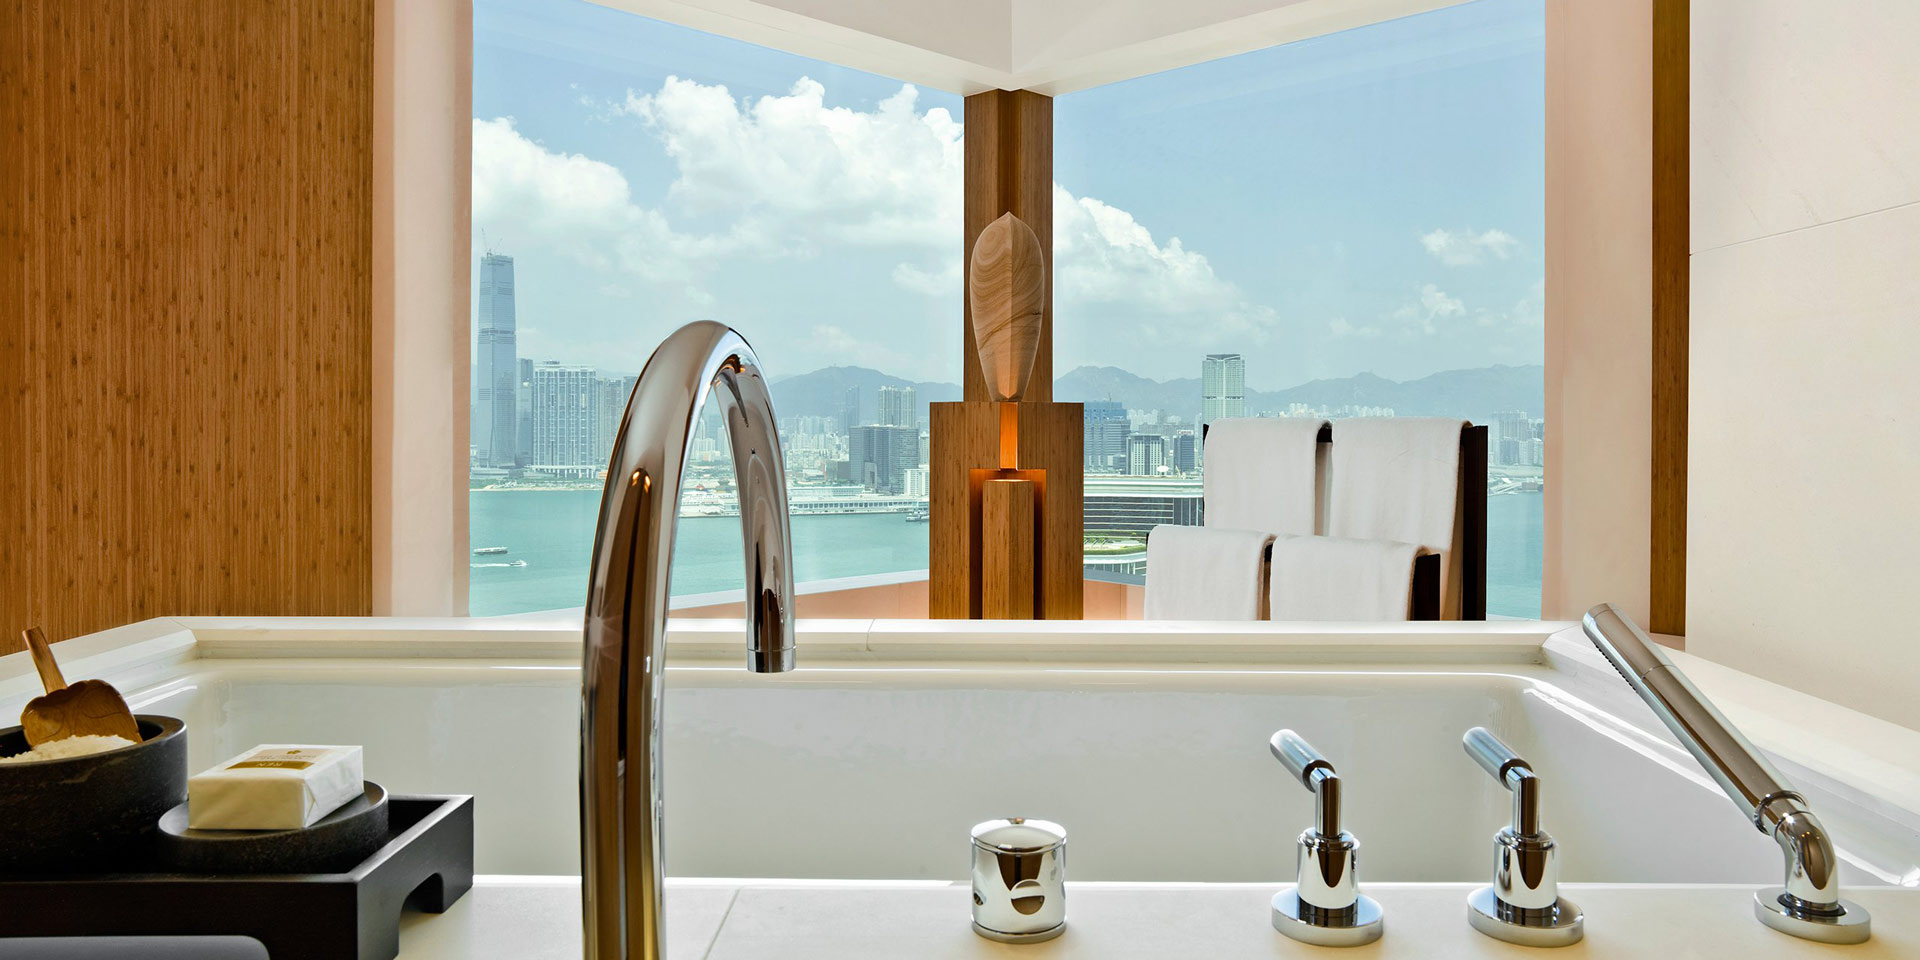 Design details abound in the Upper House hotel in Hong Kong